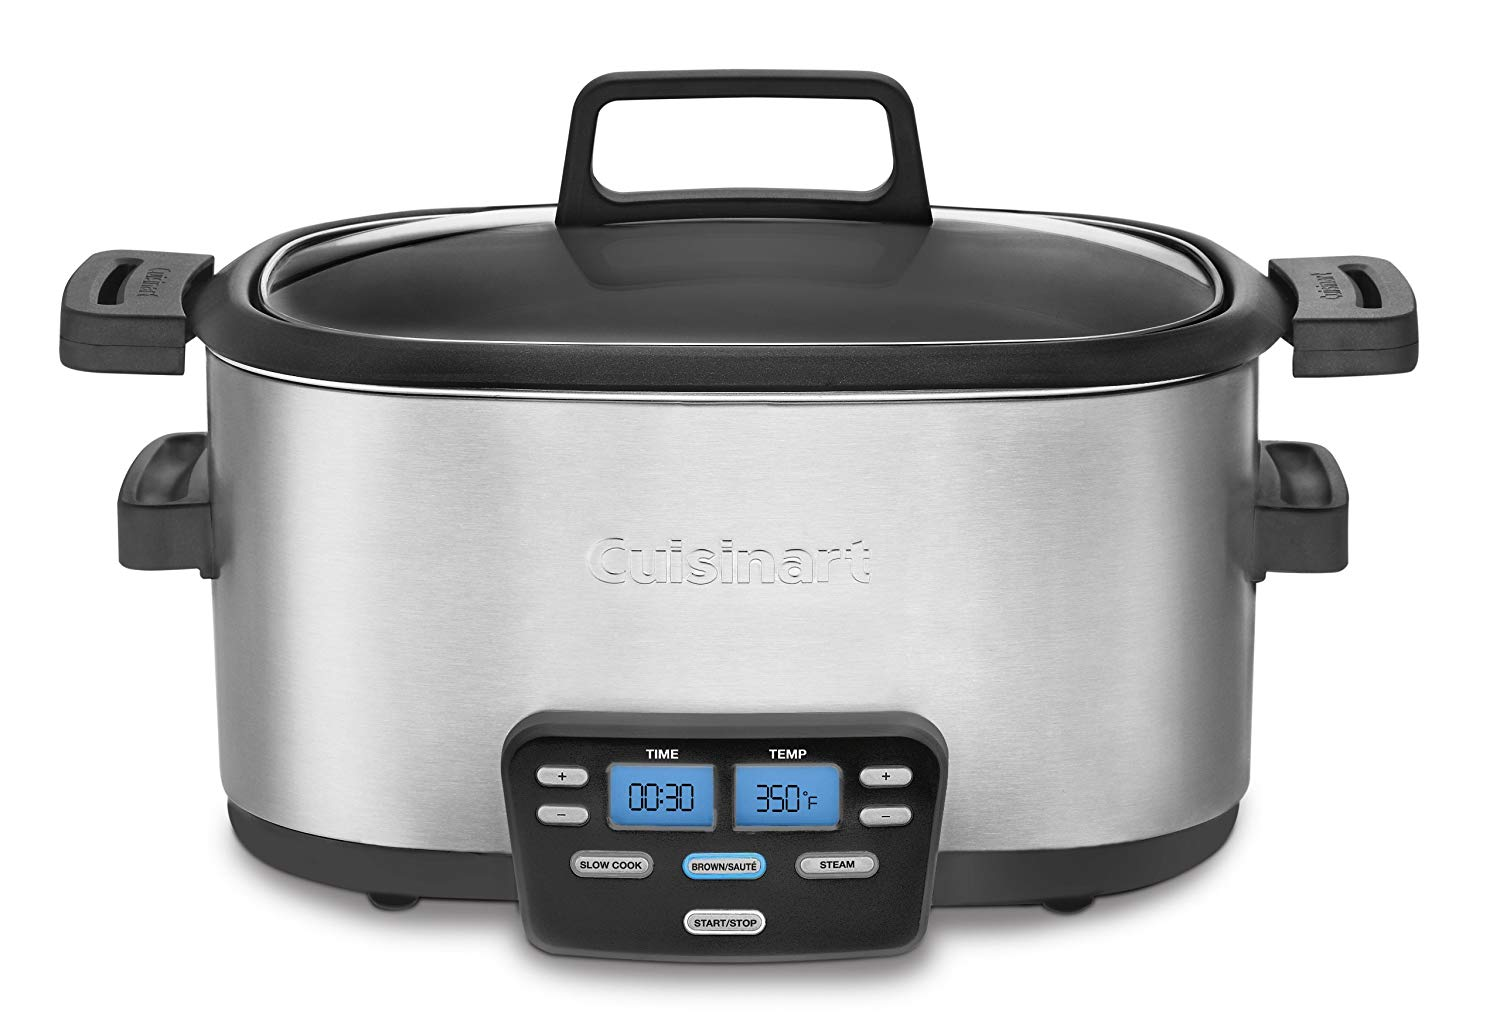 Cuisinart MSC-600 review